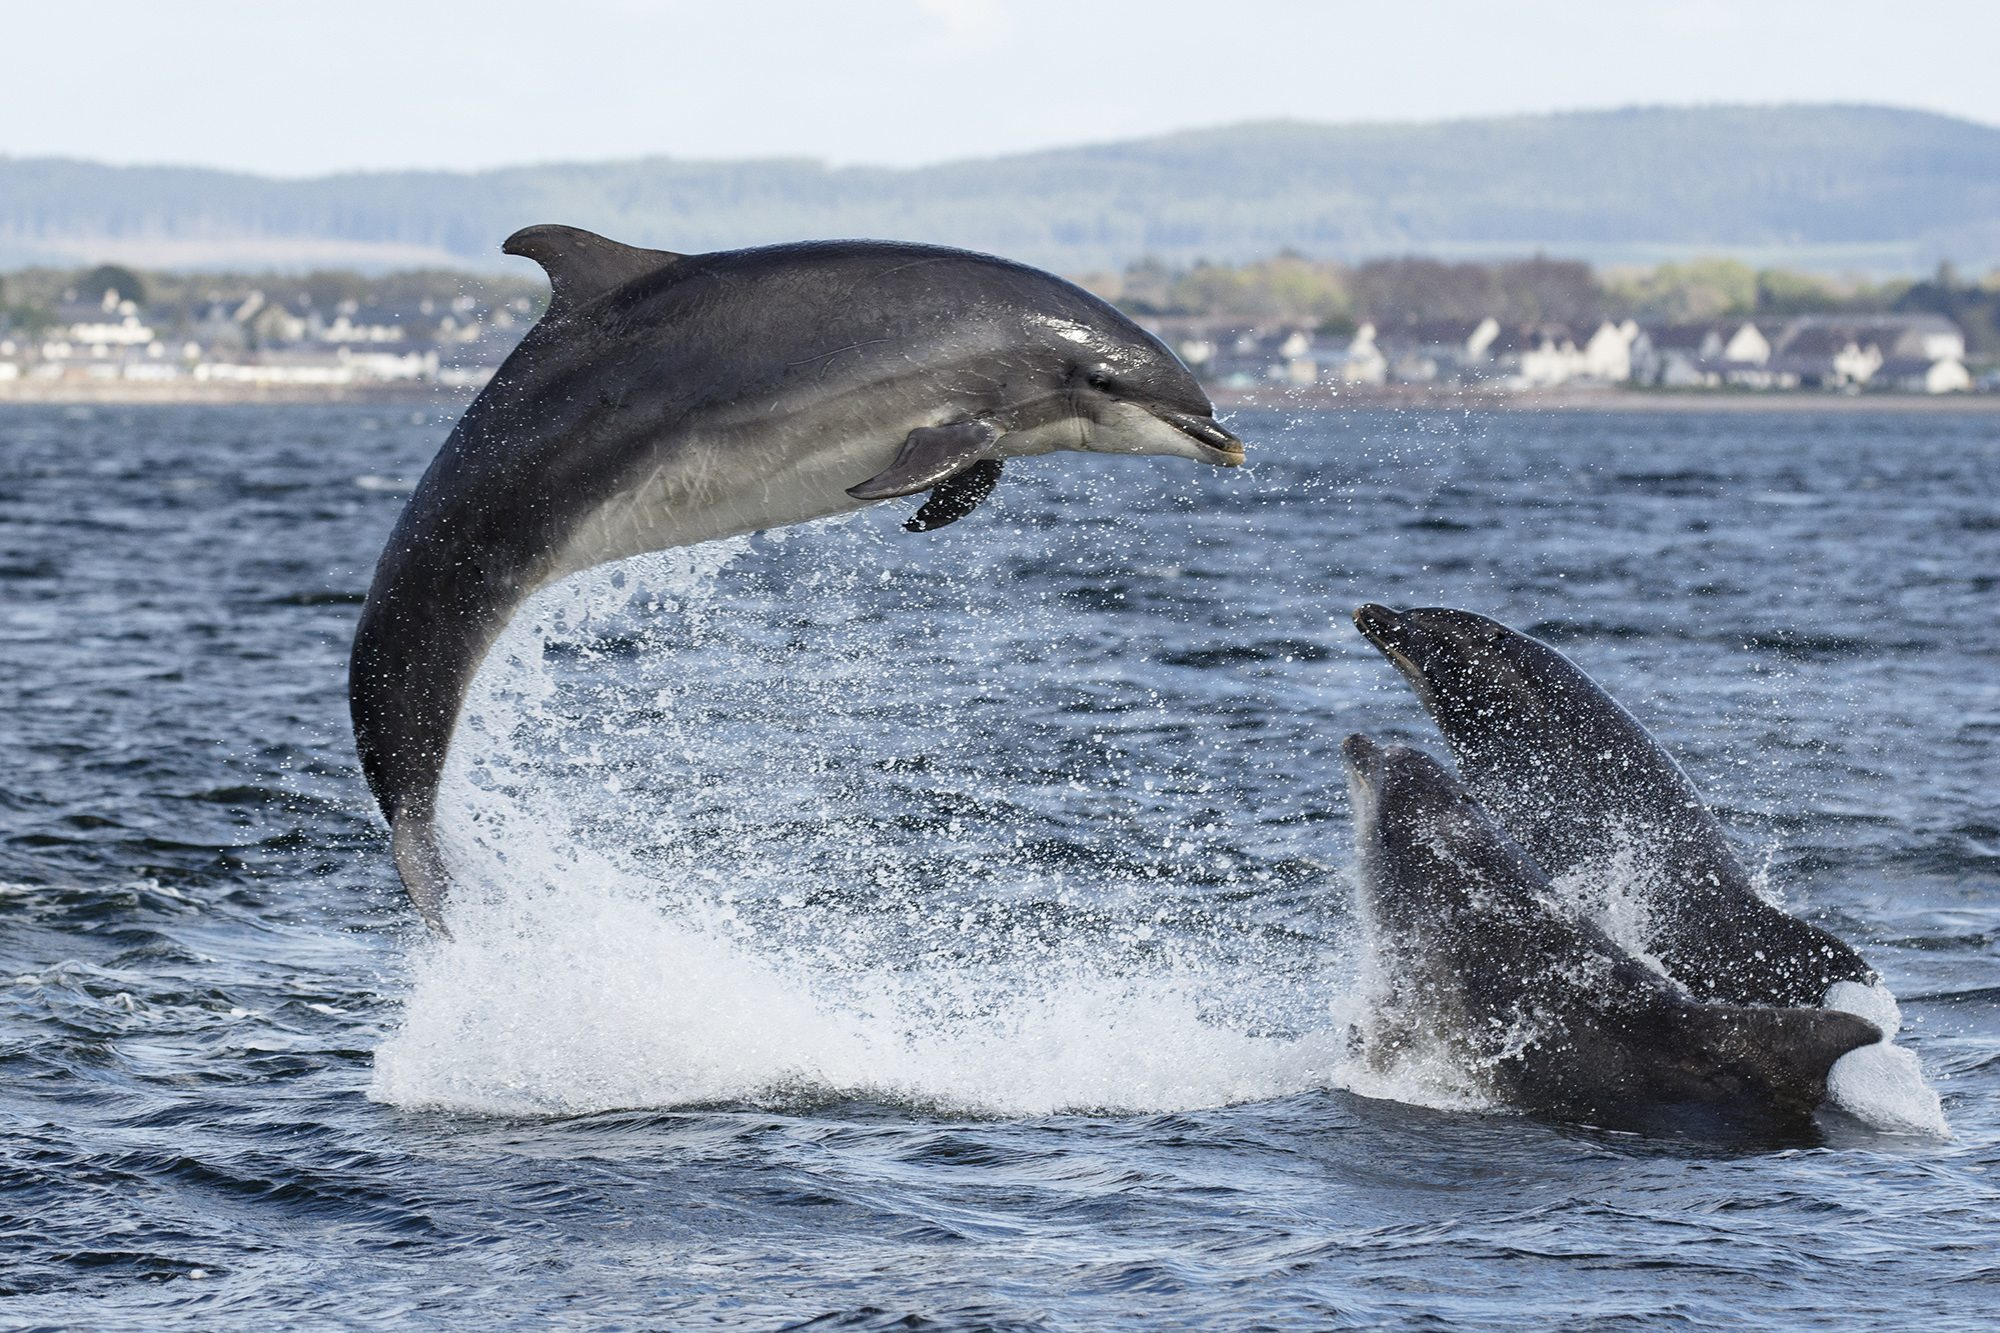 Bottlenose dolphins leaping